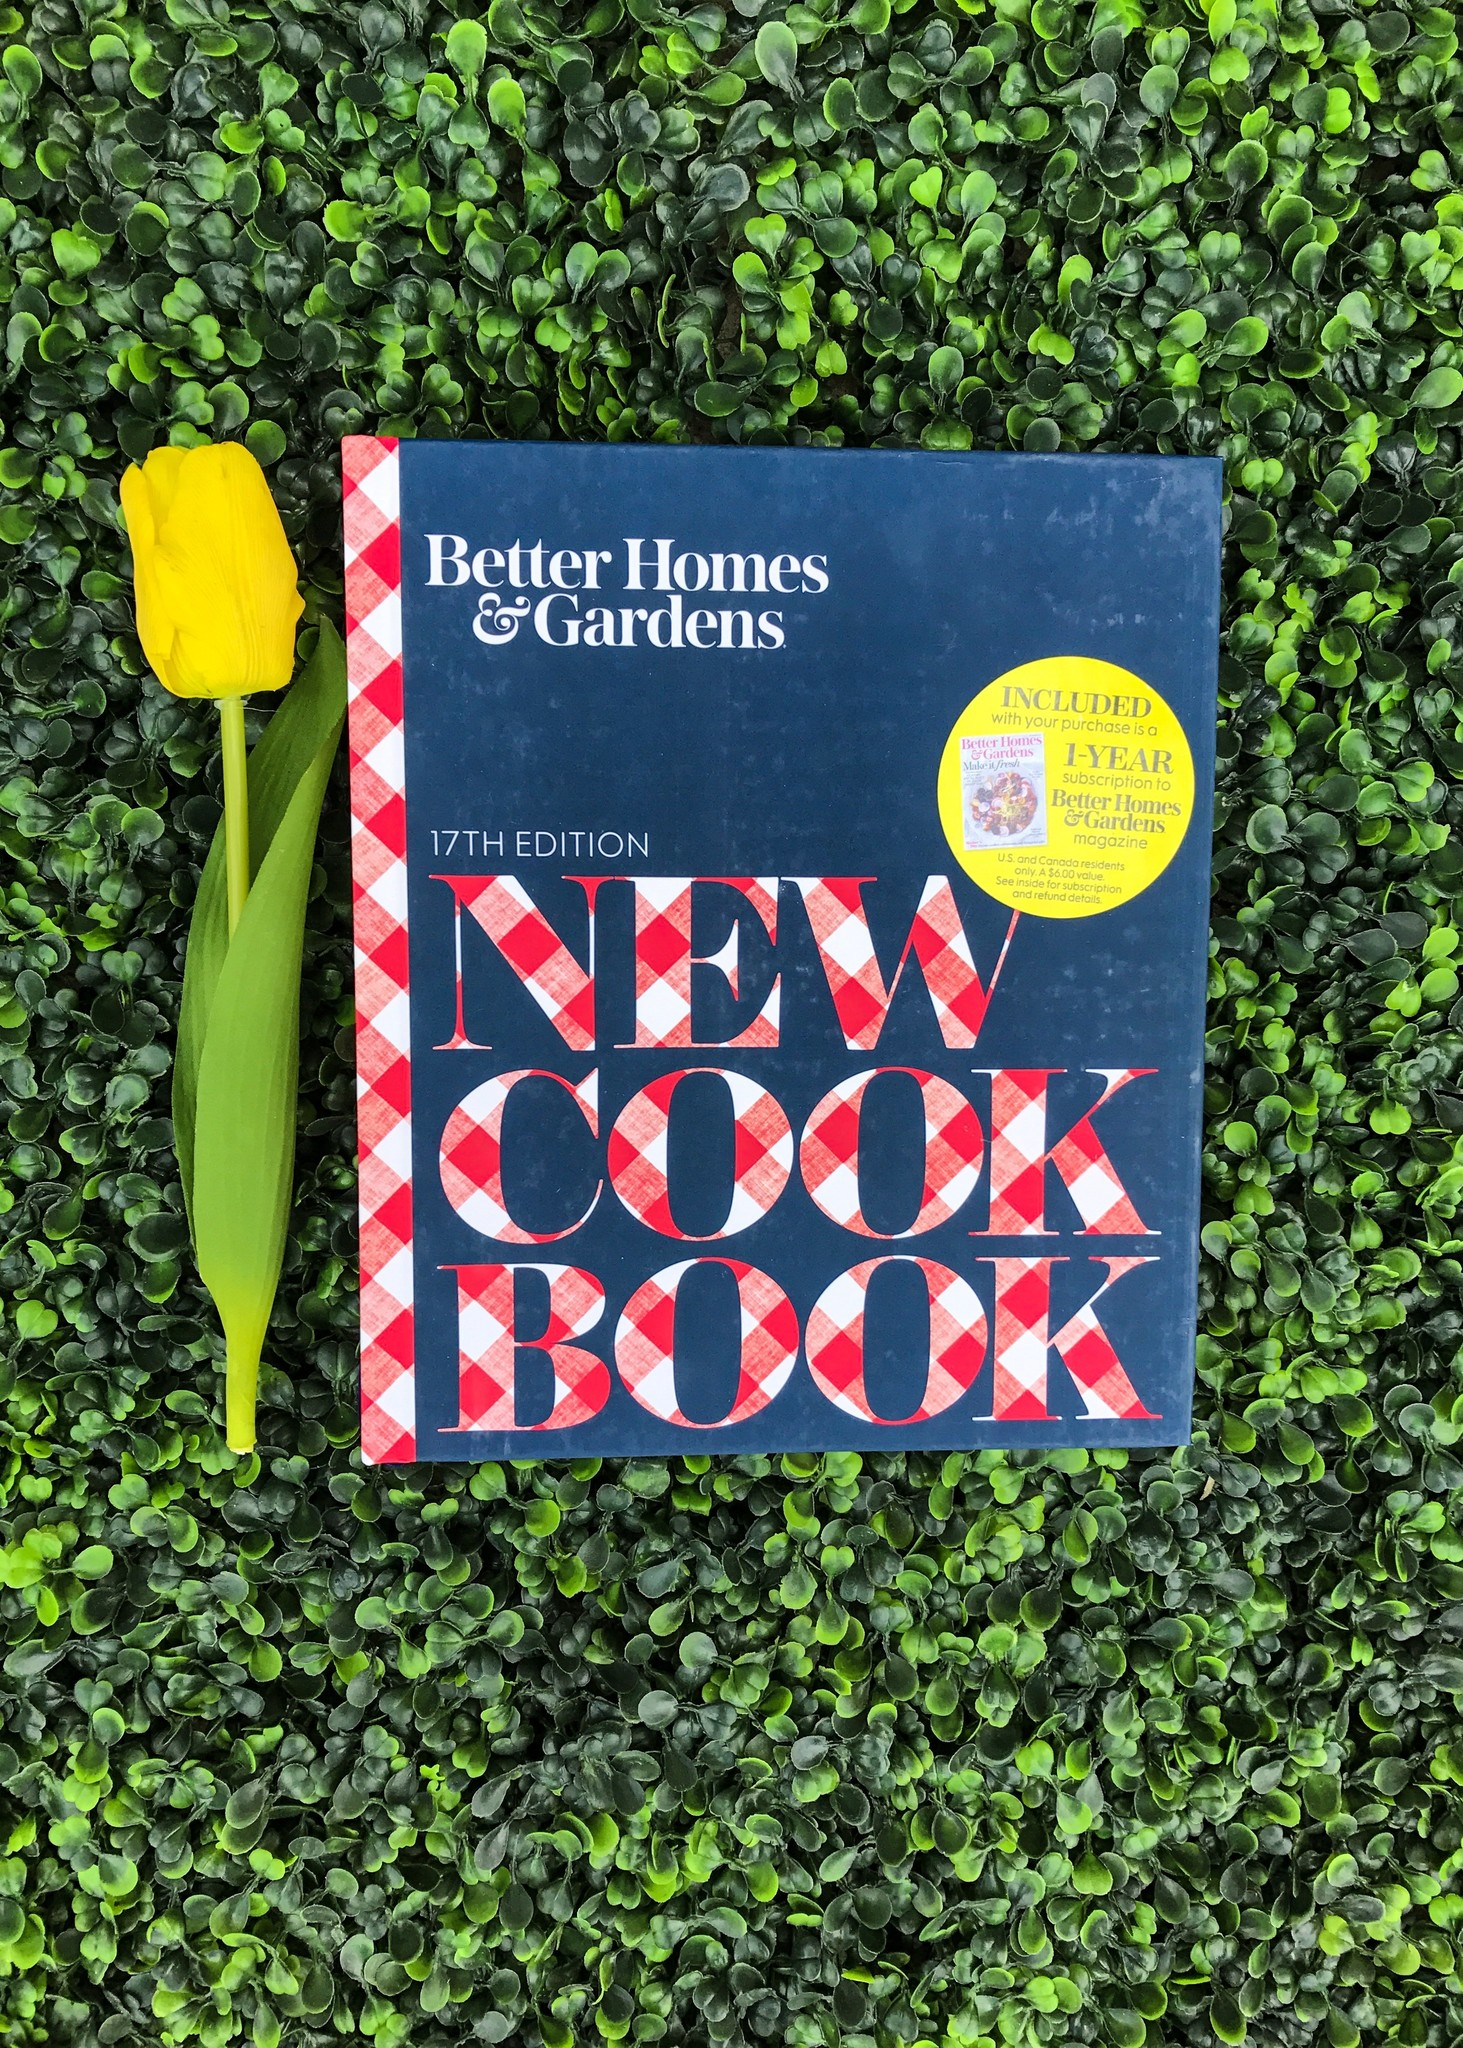 Bhg New Cookbook 509 Broadway